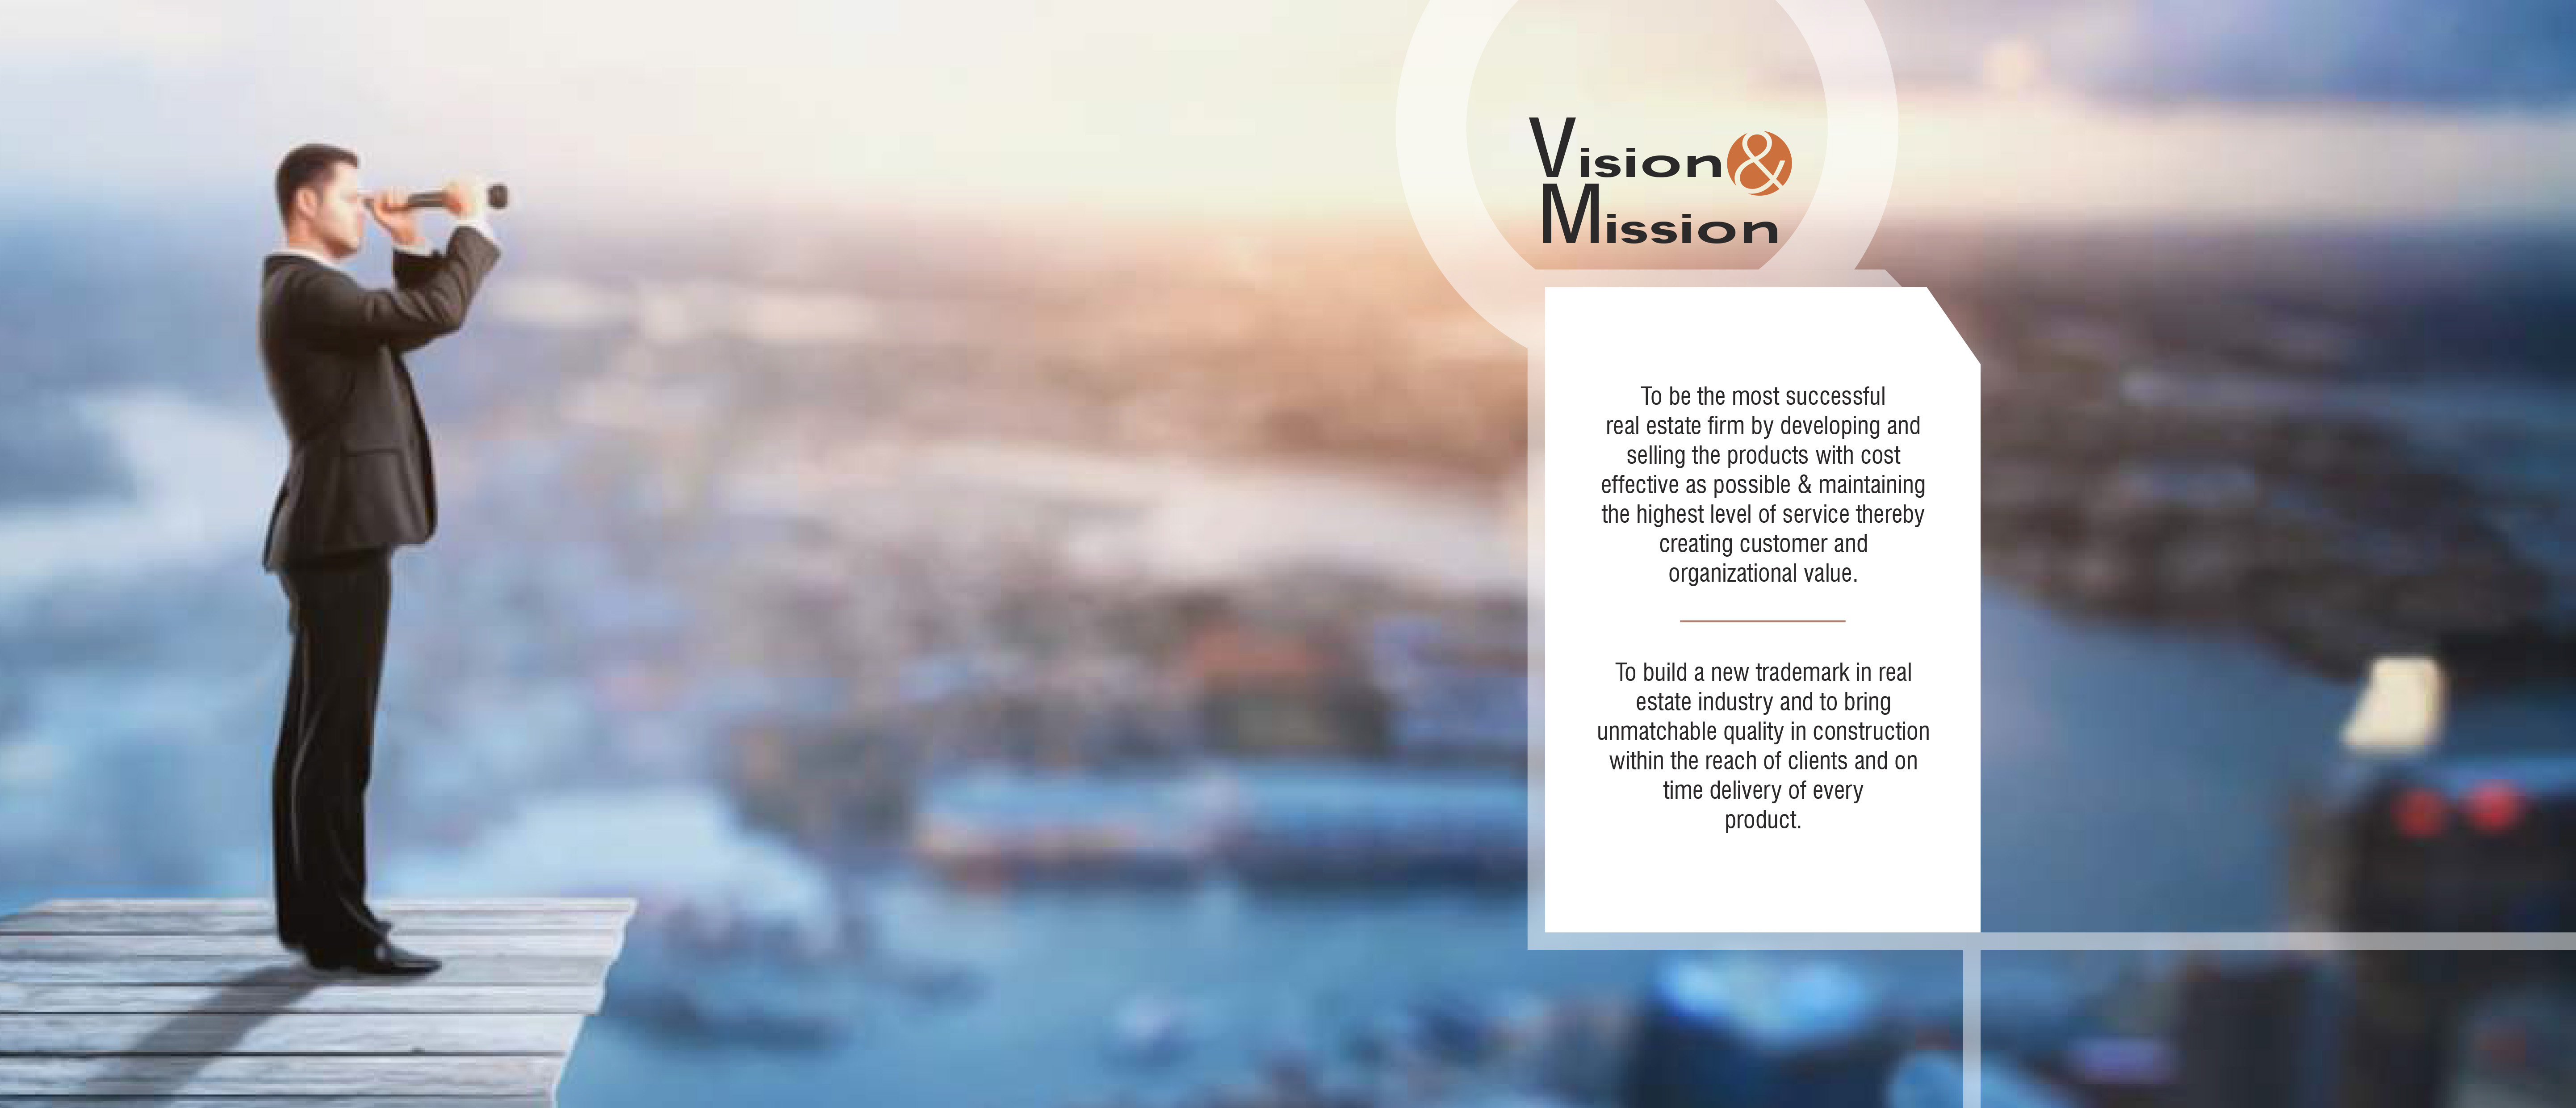 Vision and Mission of inspira builders group